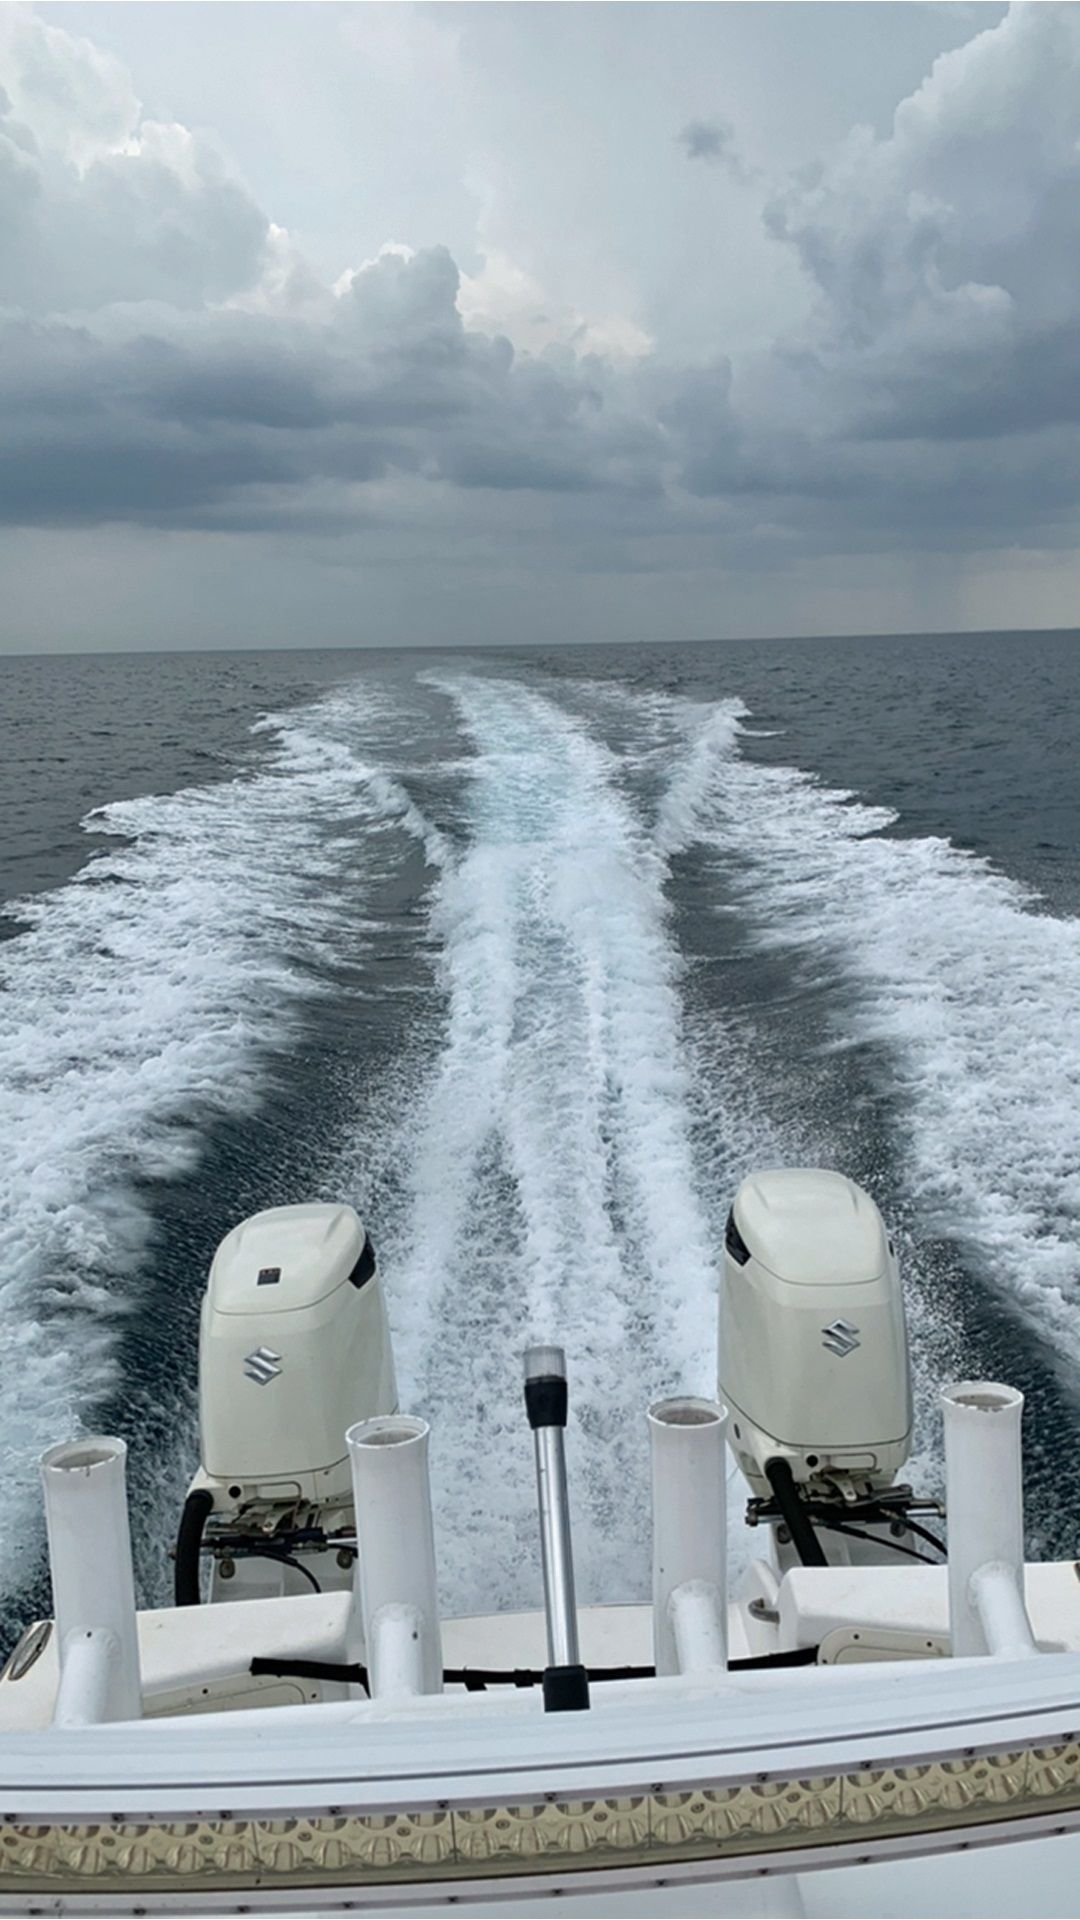 Seafarer-Exploration-Getting-to-safe-harbor-before-the-storm